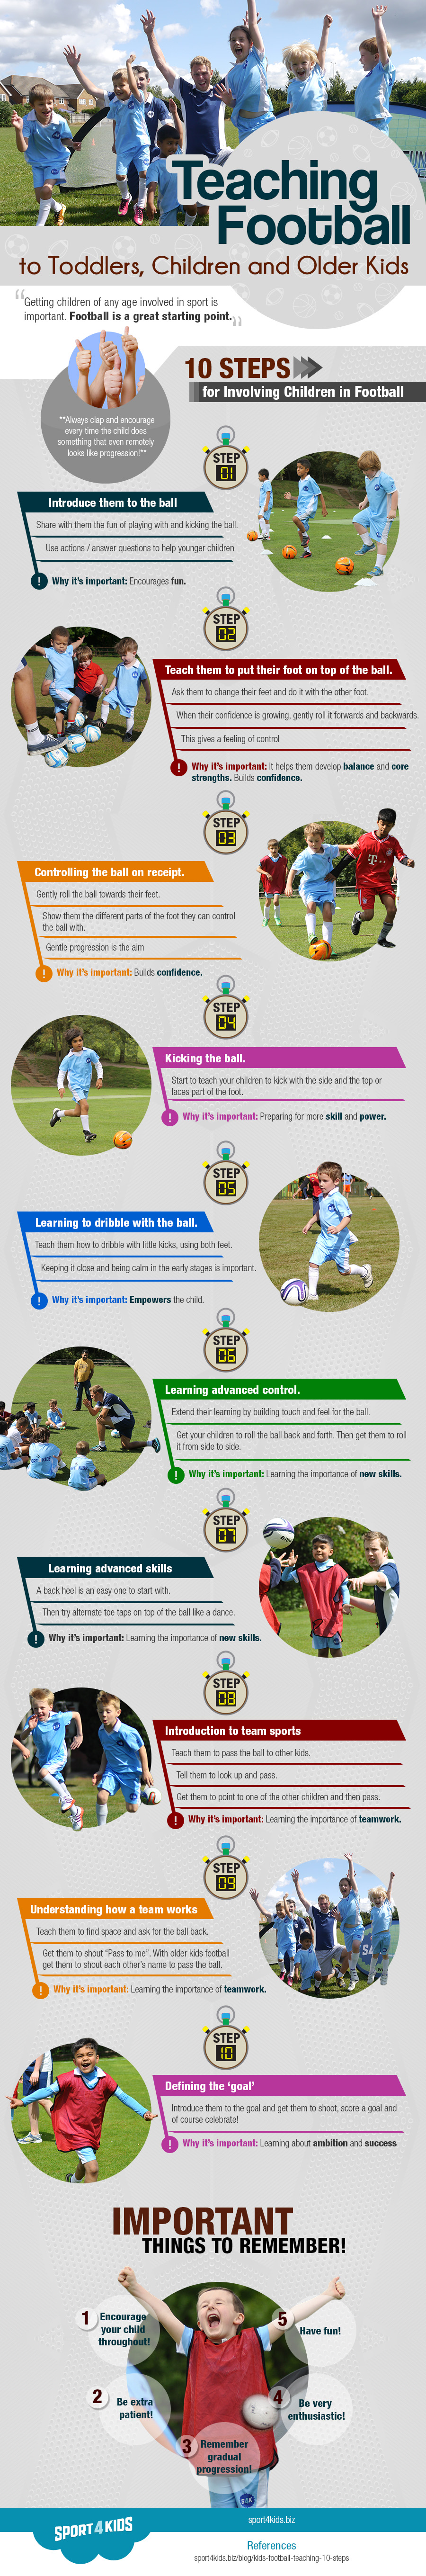 Teaching Football to Toddlers, Children and Older Kids